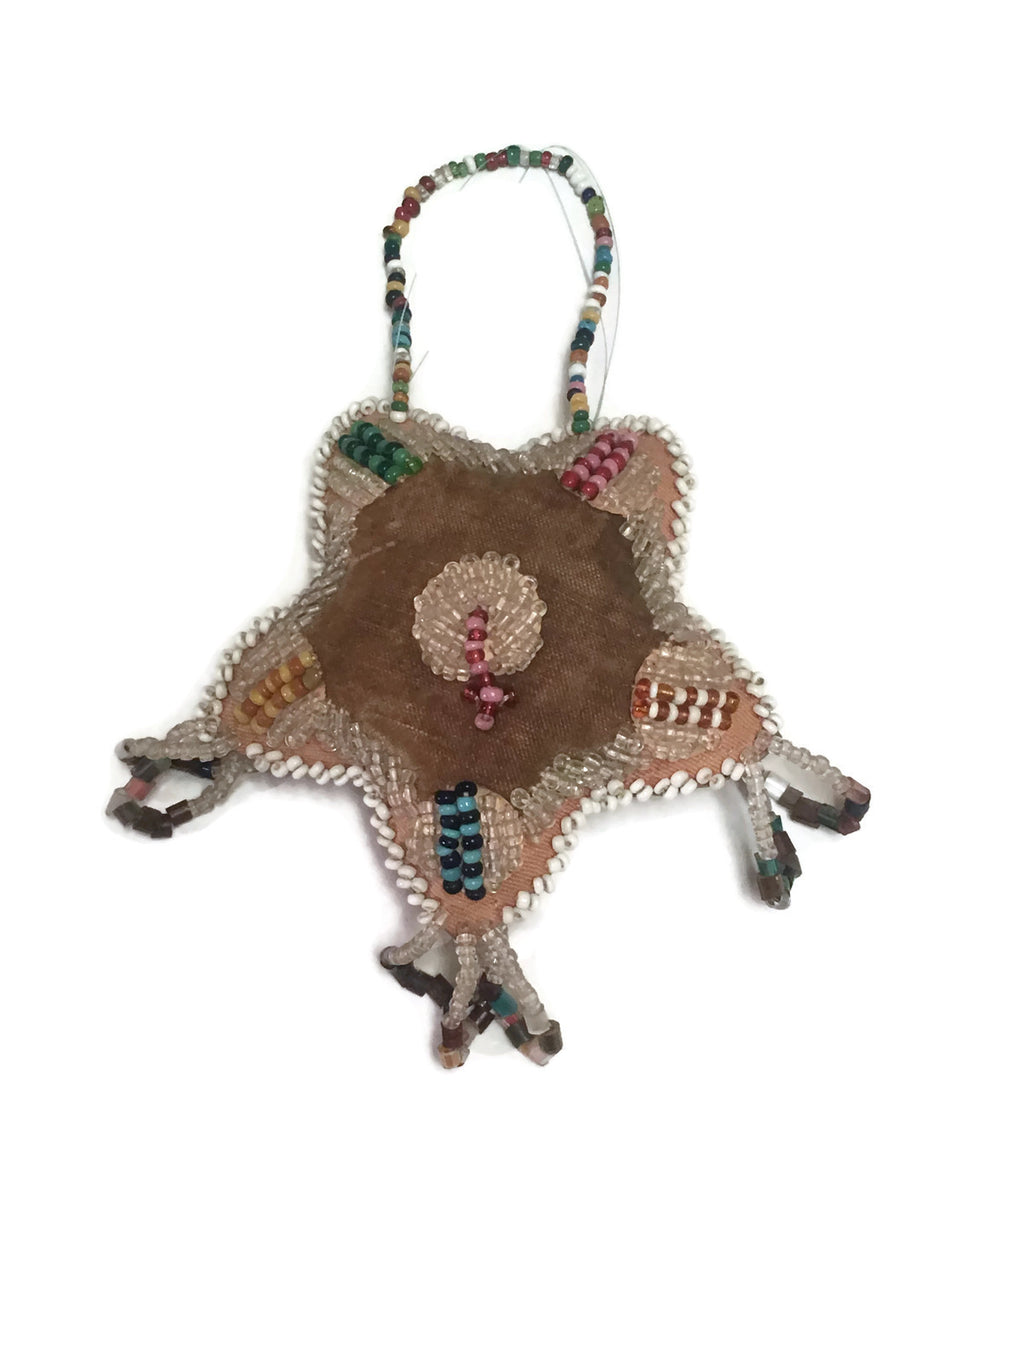 Antique Iroquois Bead Work Whimsy